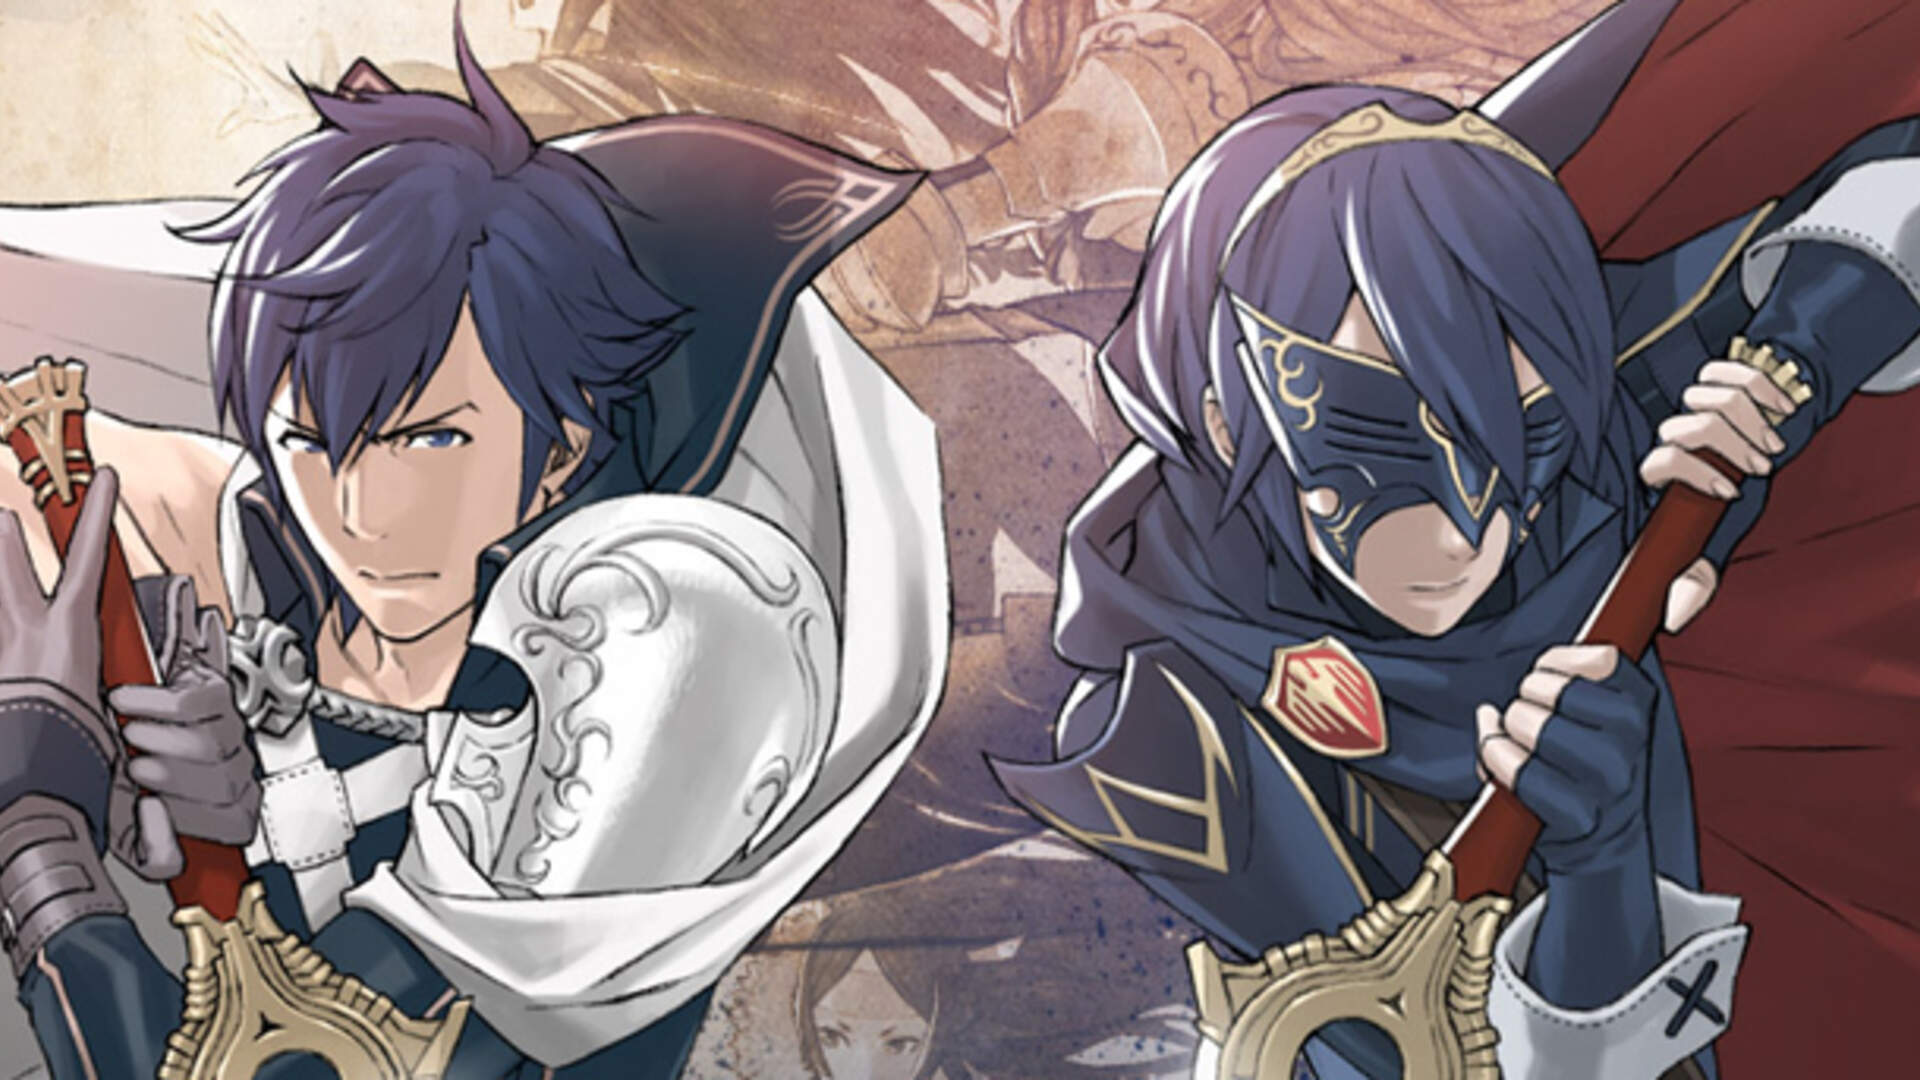 Opinion: Fire Emblem is Suddenly One of Nintendo's Most Prominent Franchises